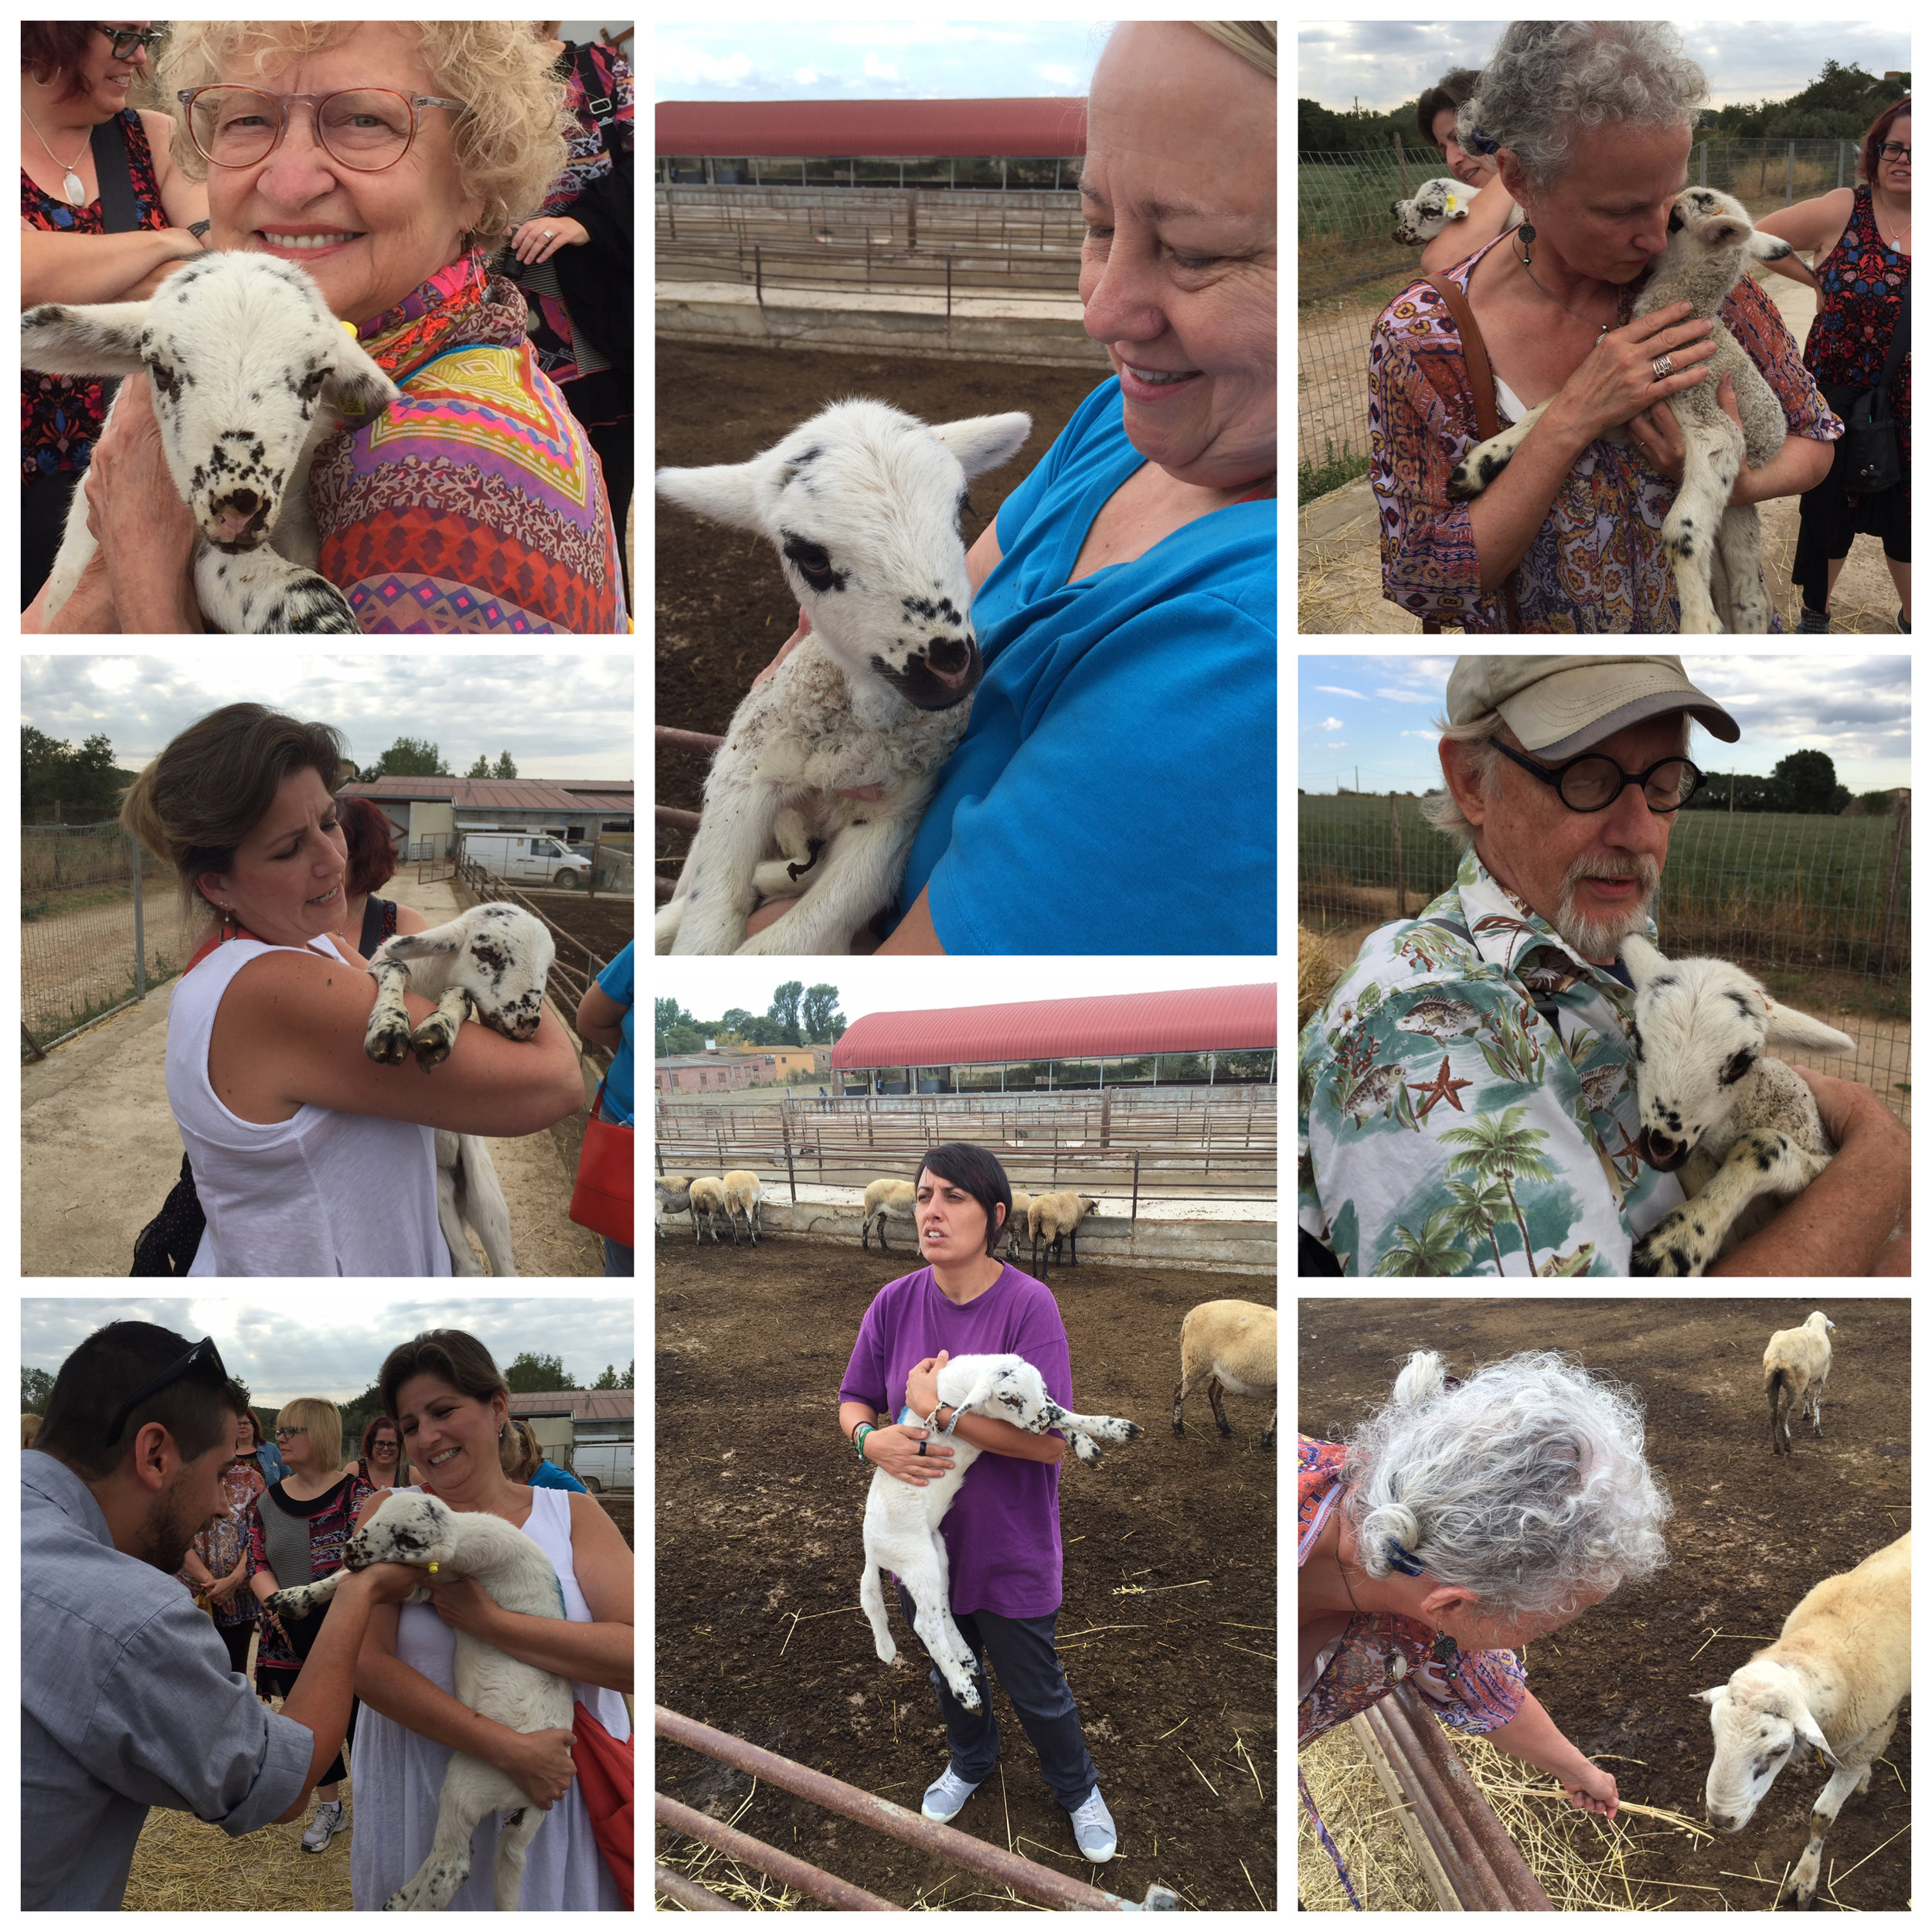 Of course, we had to pet the sheep, including a day-old baby.